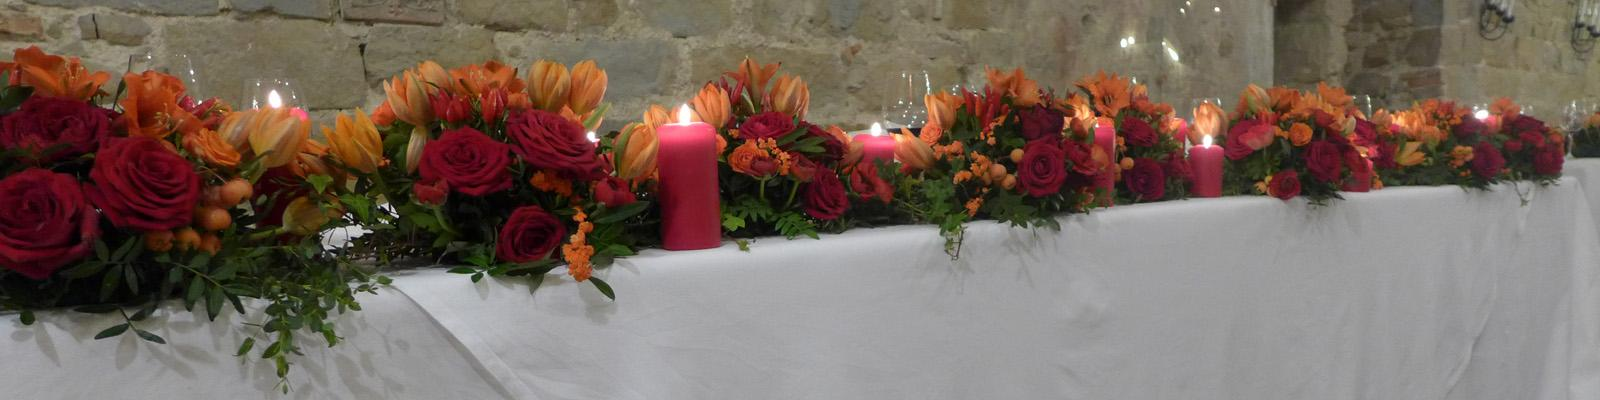 Runner of flowers in the shades of red and orange for the high table